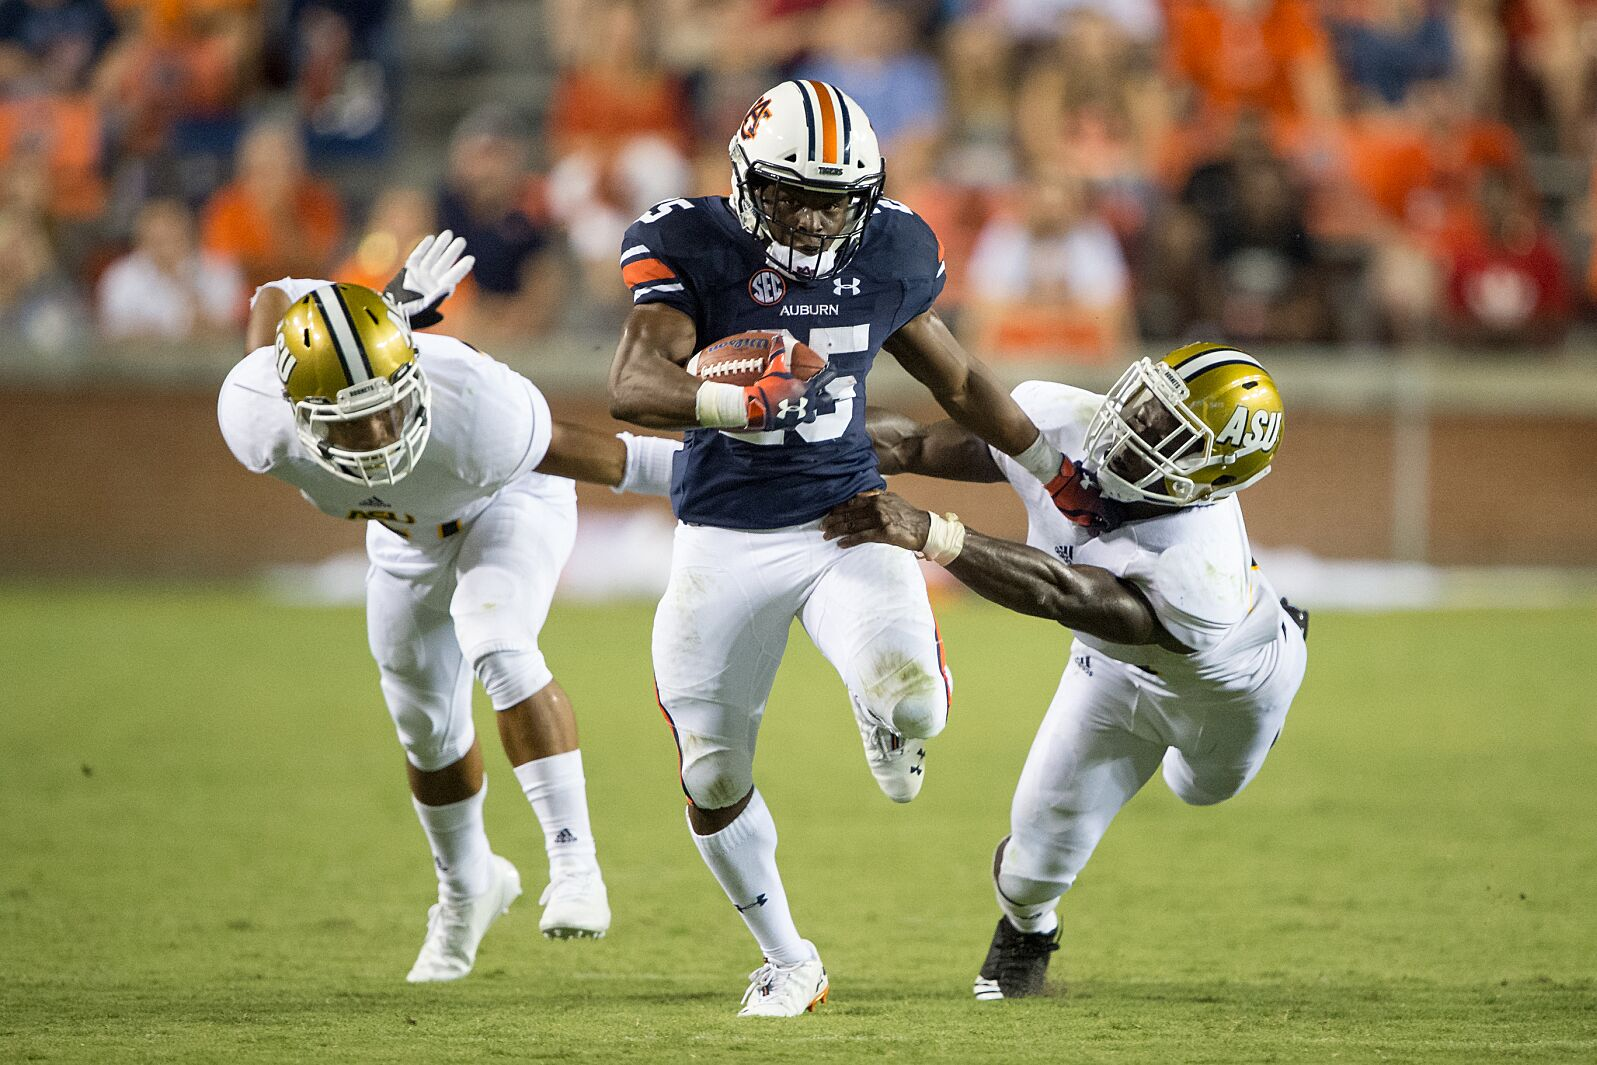 Auburn football: Tall task, but Shaun Shivers could join ...